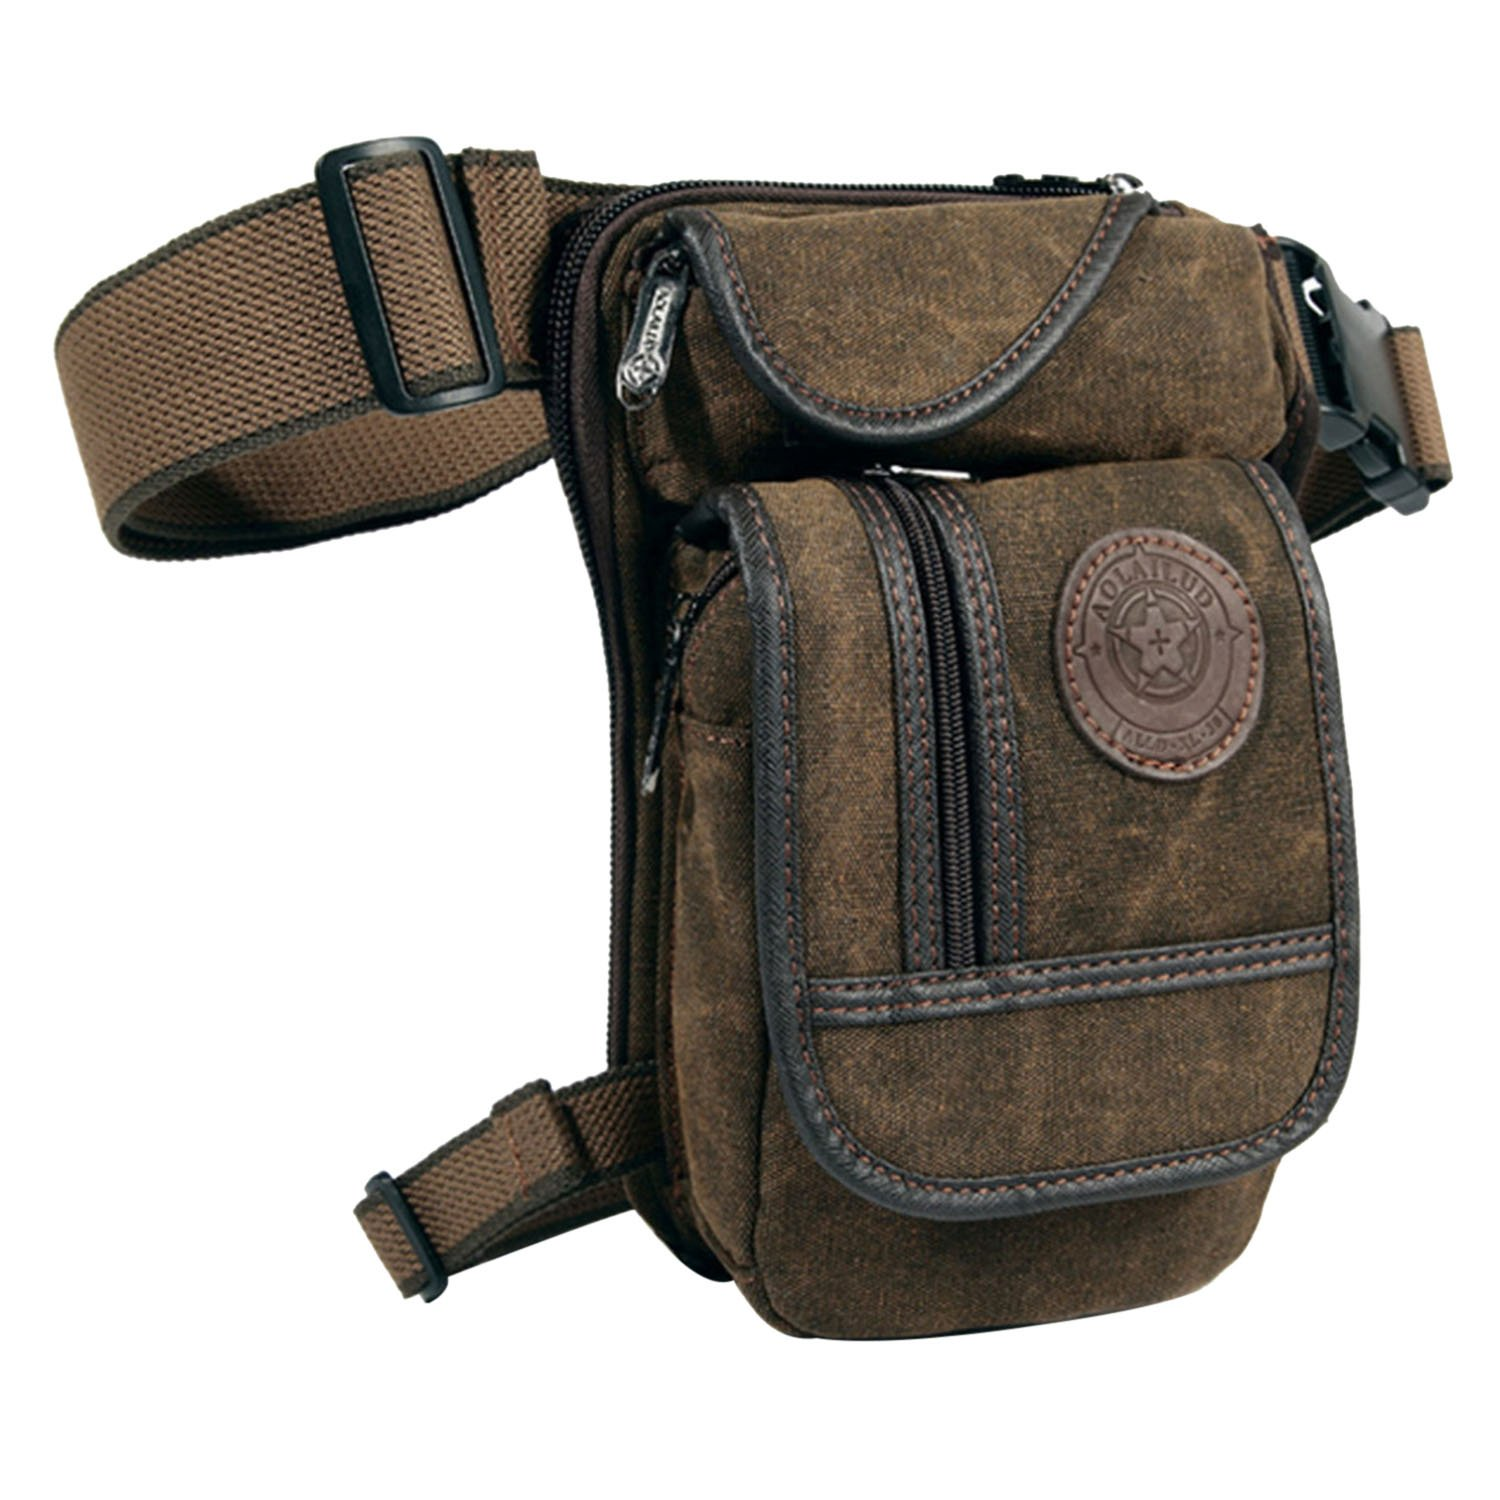 Egoodbest Tactical Military Outdoor Multi pocket